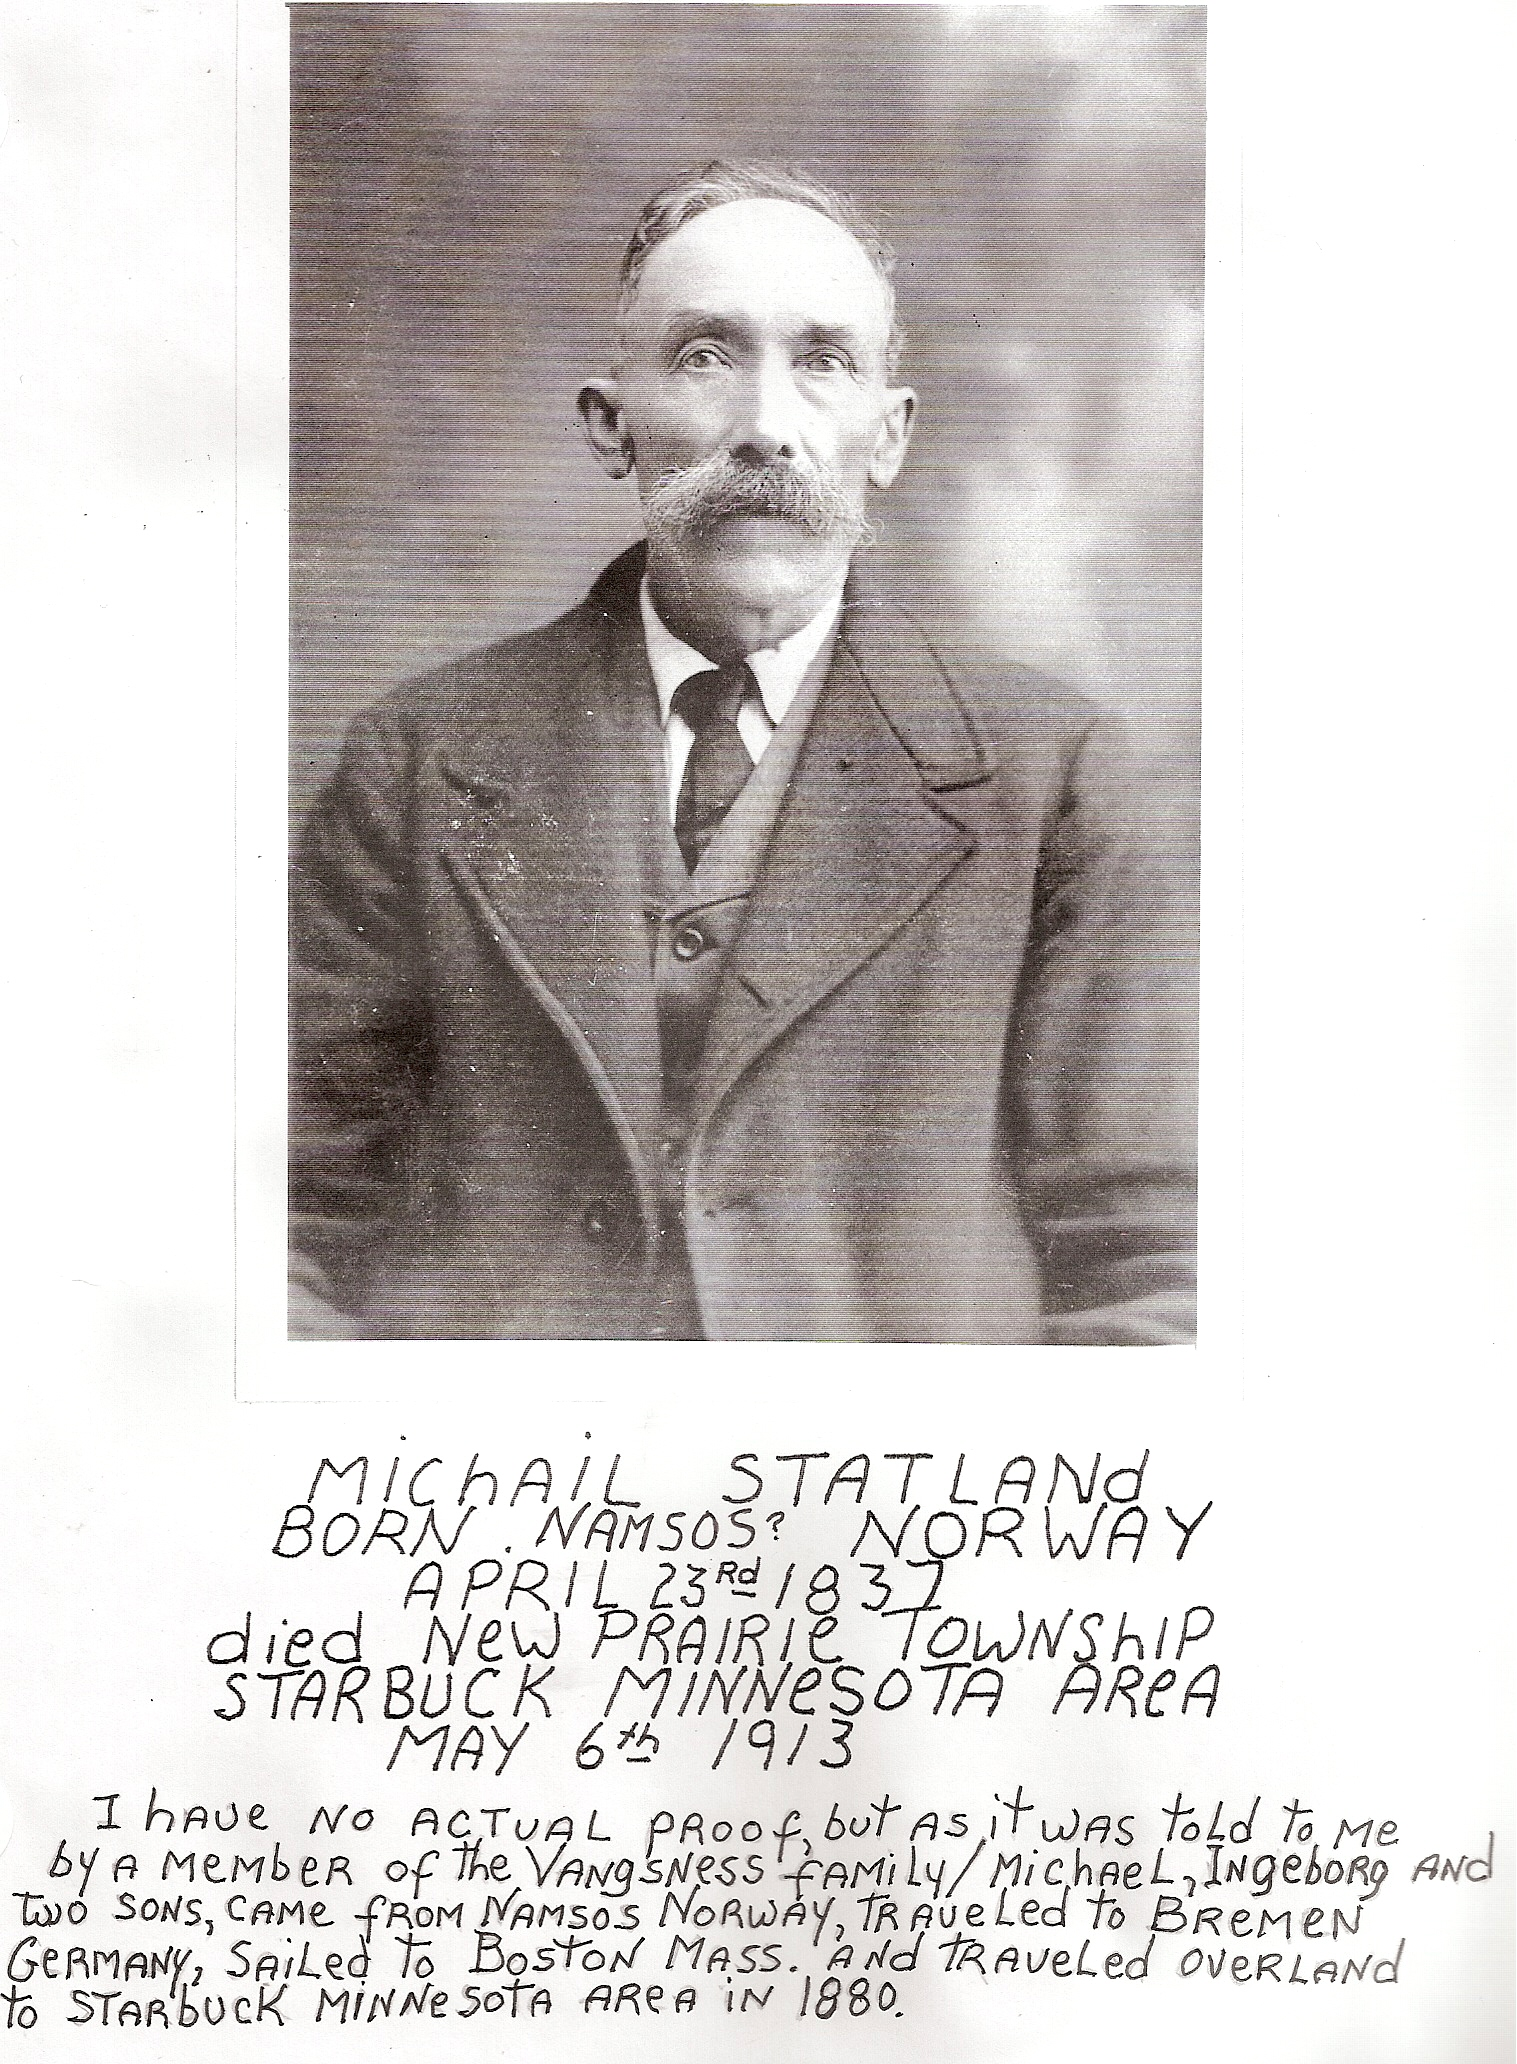 Michail Statland (my g-g-grandfather from Norway)- with info